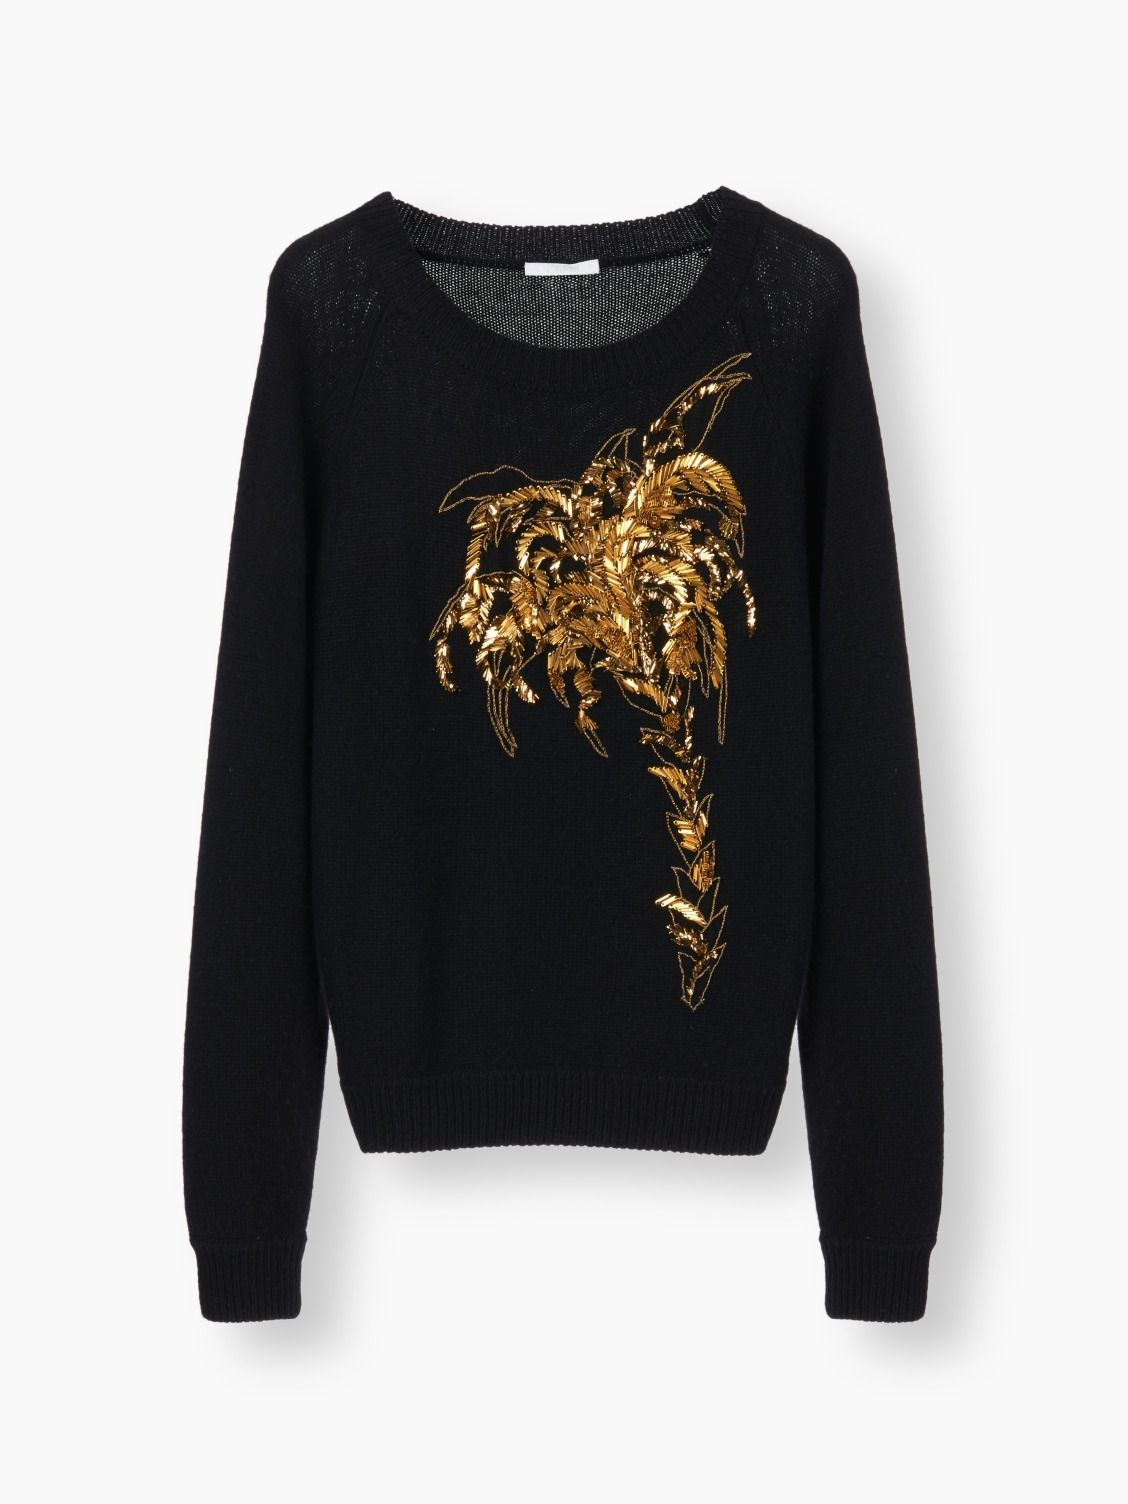 Wool & cashmere sweater with gold palm tree embroidery from our ...